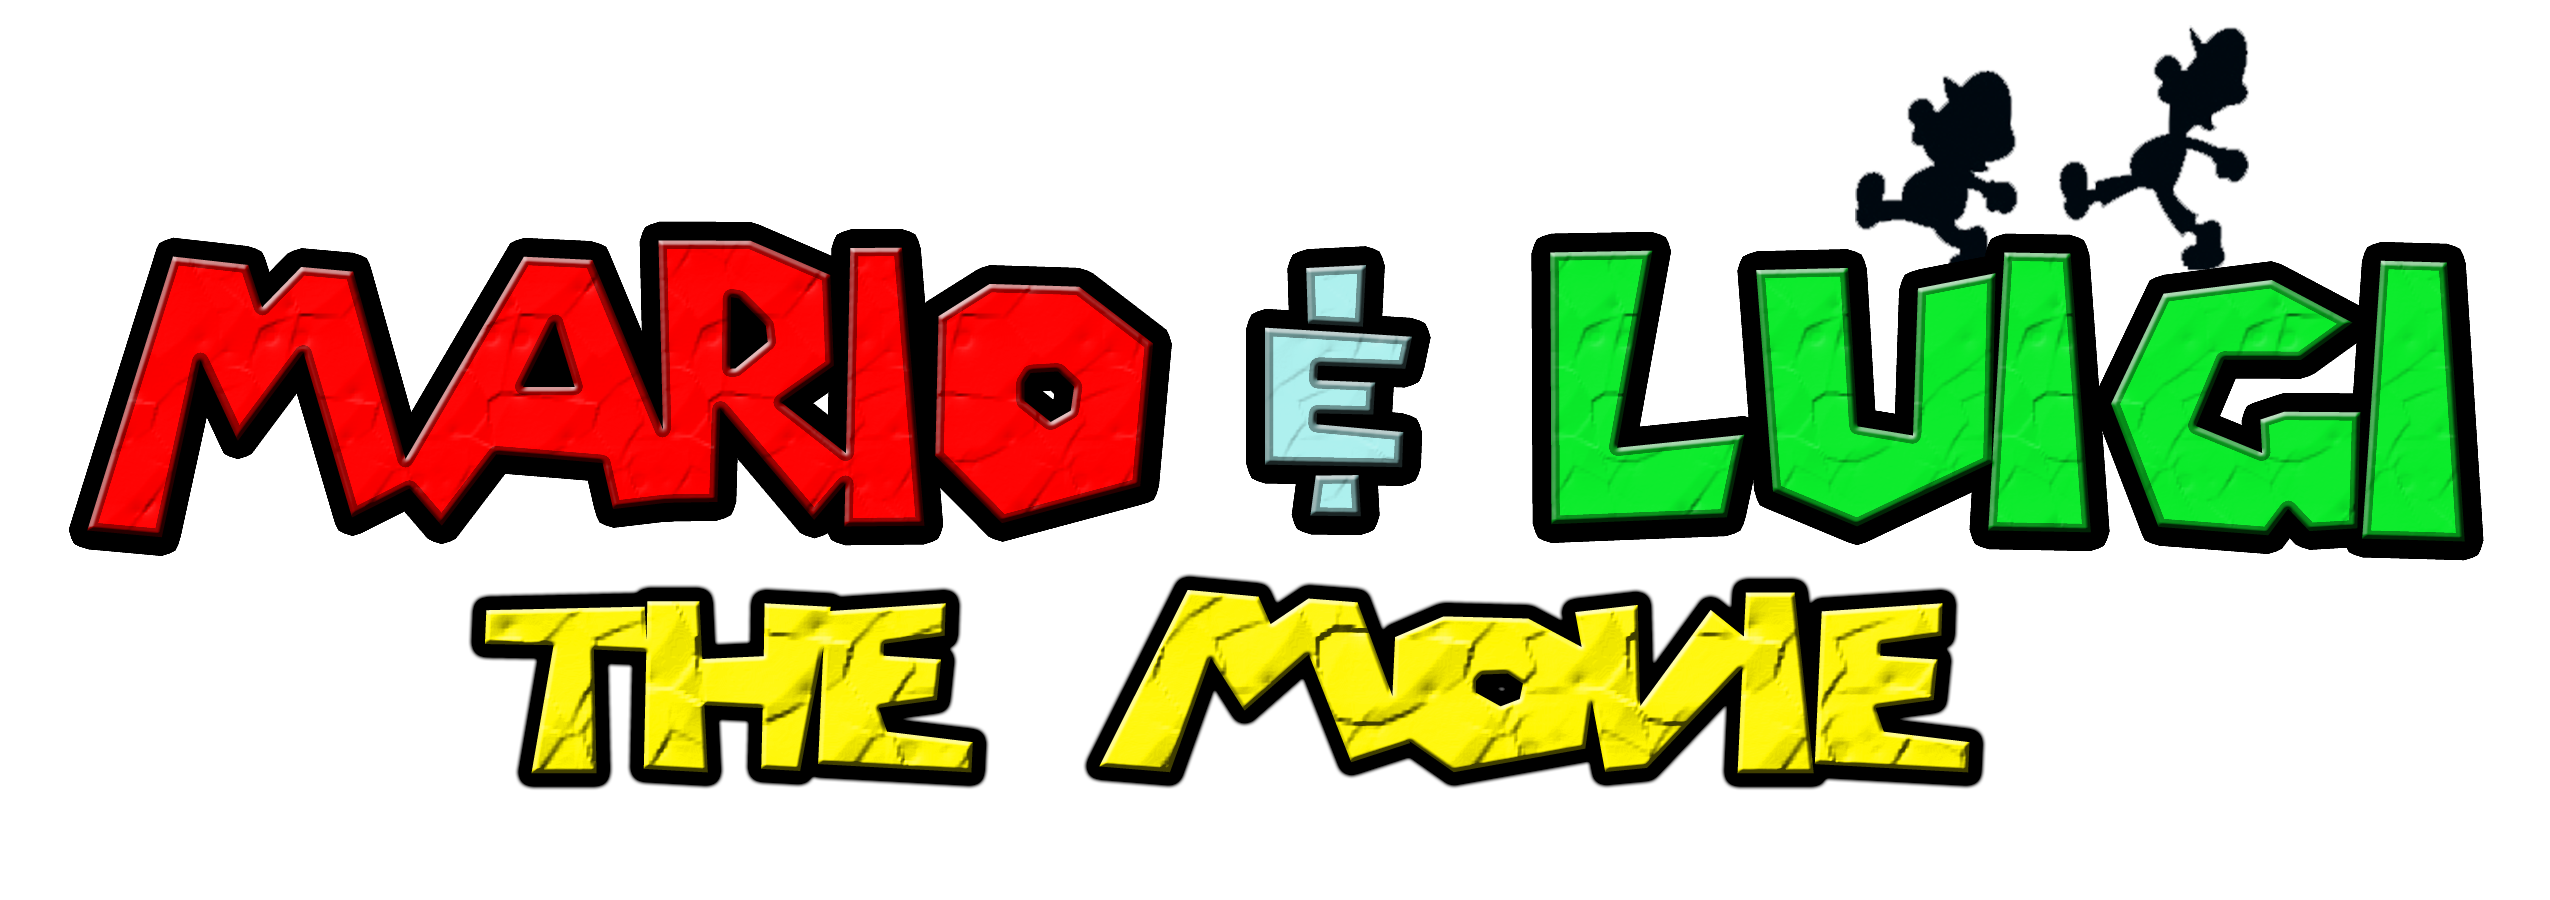 Mario And Luigi The Movie Logo By Kingasylus91 On Deviantart